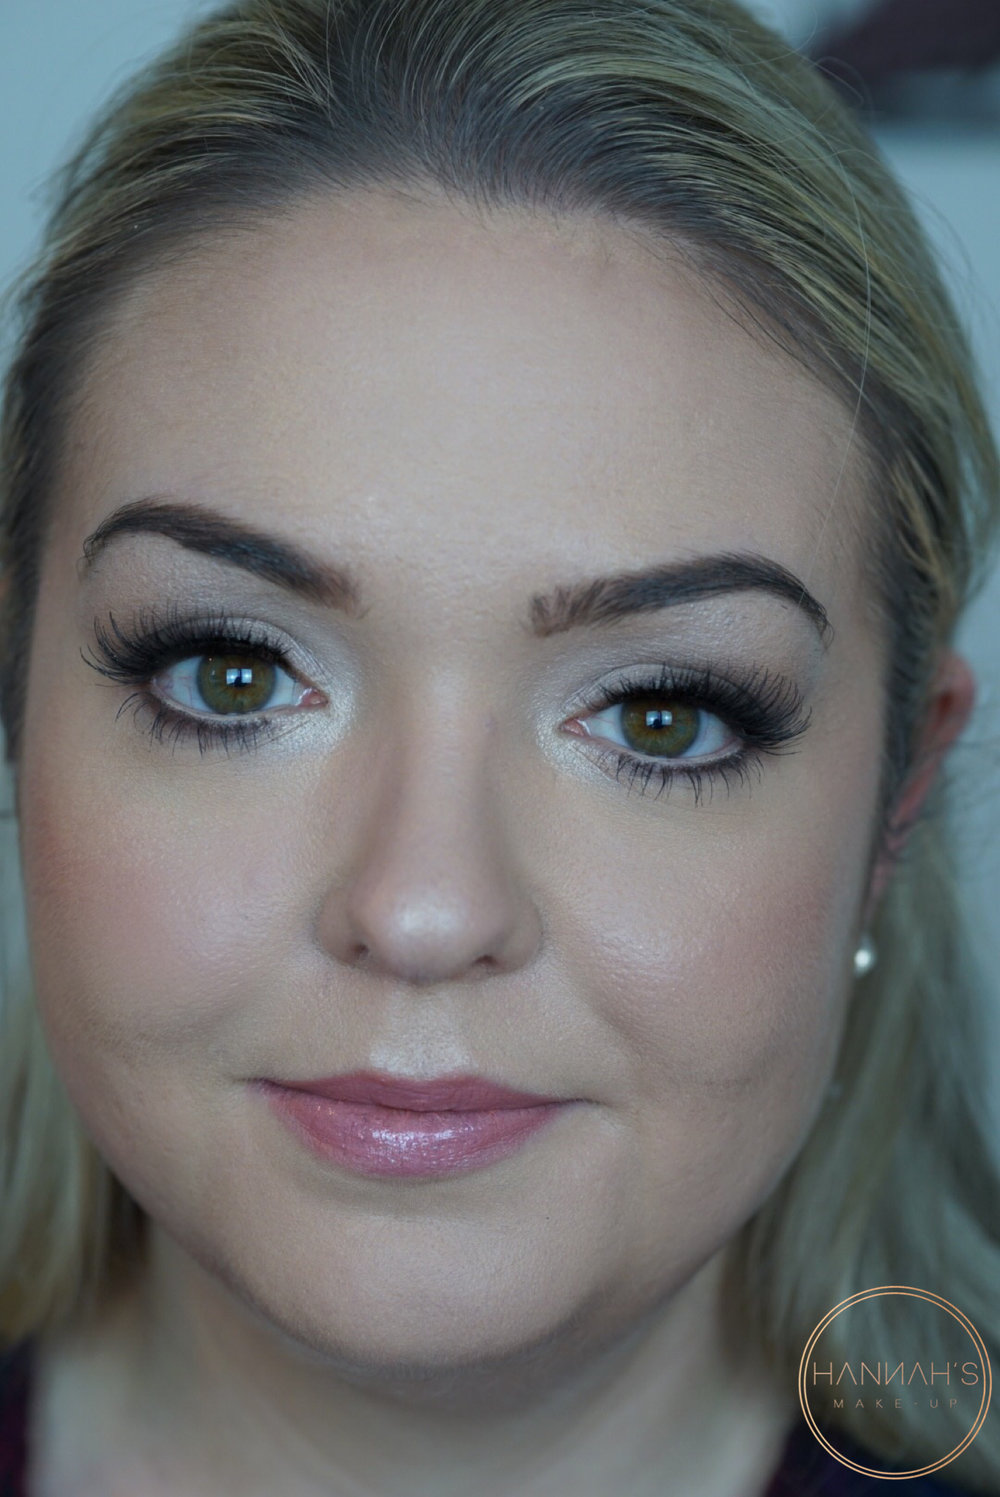 0608dfb90ce The 'bride to be' wanted soft smokey grey eyes with a subtle smoked out  wing with fluffy natural looking false eyelashes. Coverage was wanted for  her skin ...